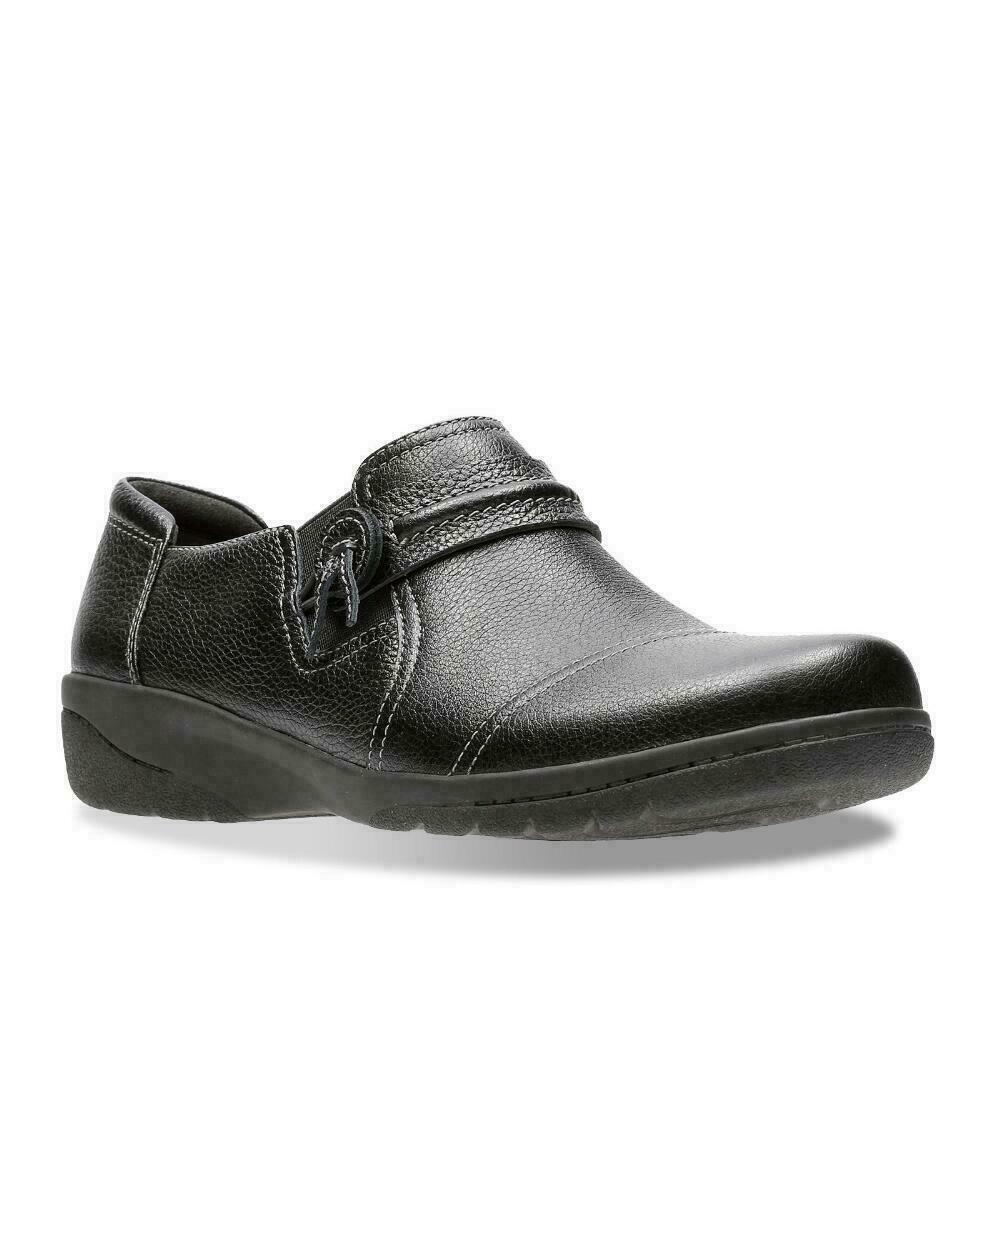 NEW CLARKS BLACK LEATHER WEDGE COMFORT WALKING PUMPS SIZE 8 M - $50.99